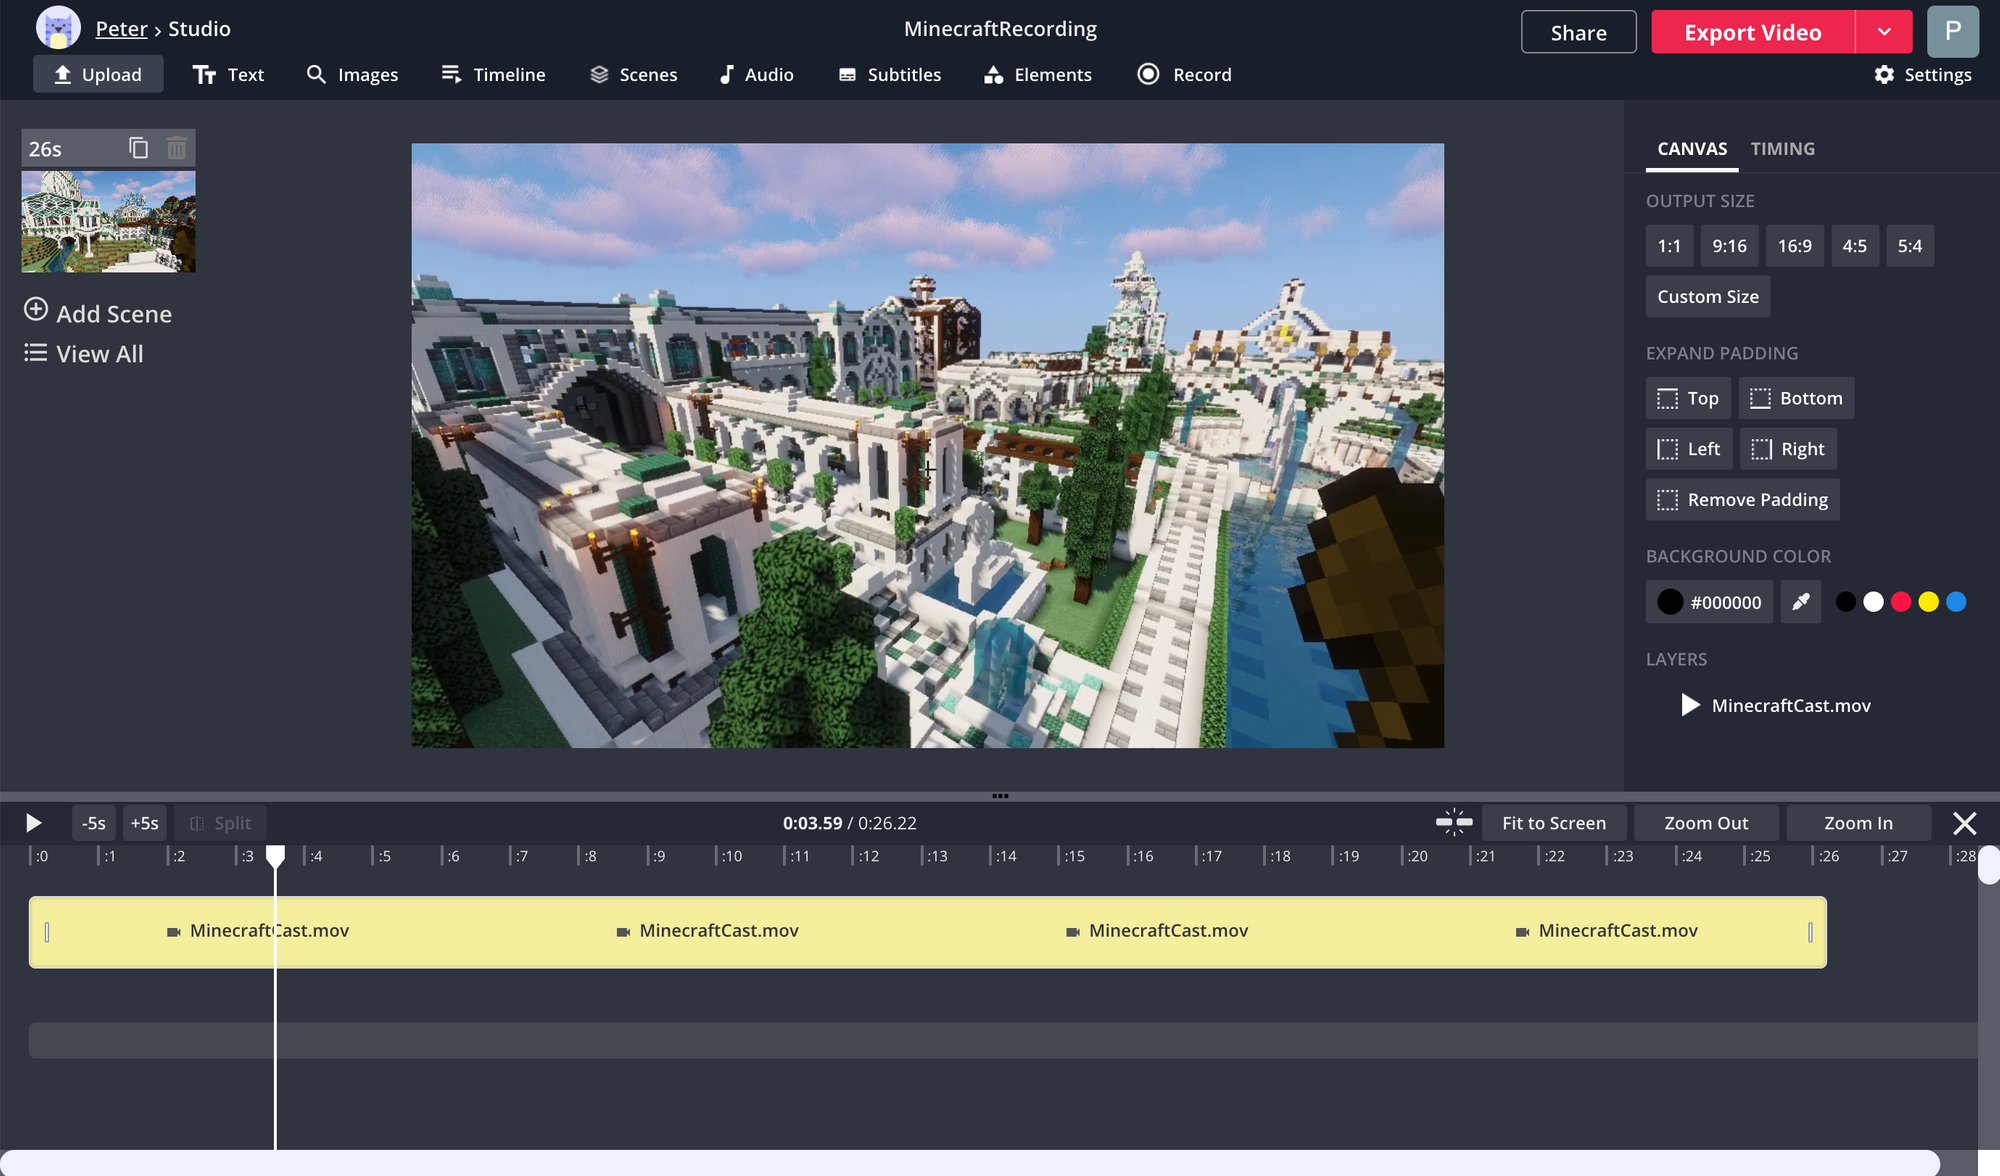 A screenshot showing a Minecraft recording in the Kapwing Studio.